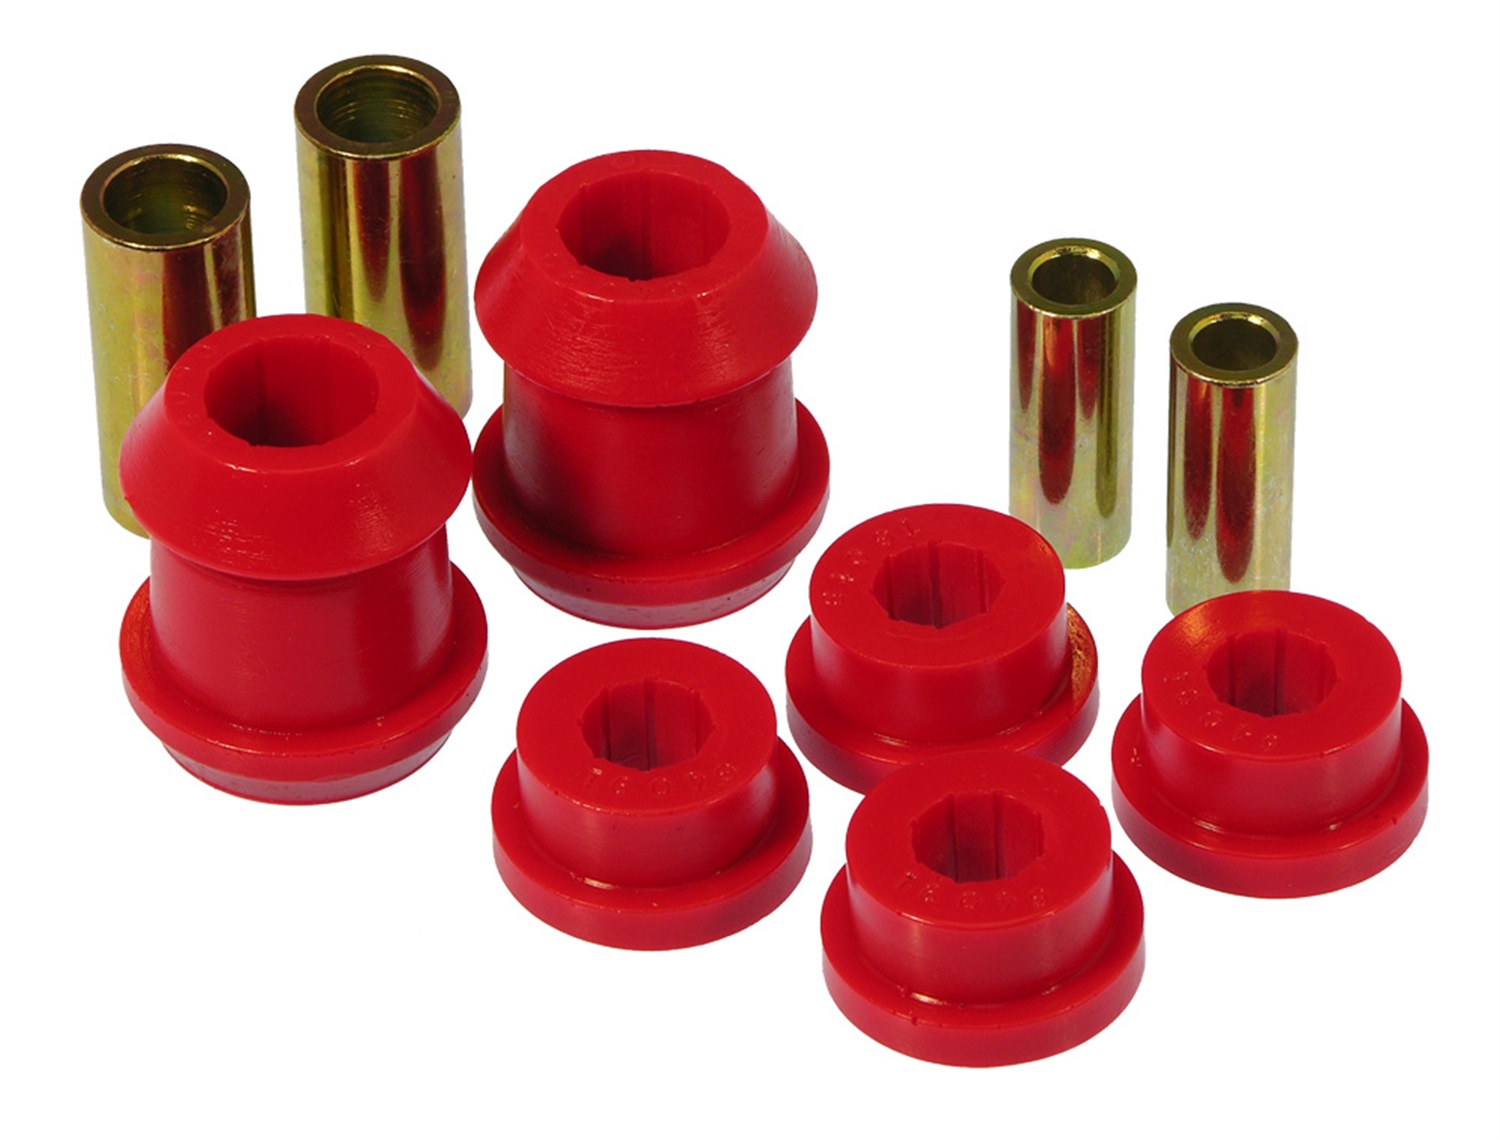 Prothane 8-212 Control Arm Bushing Kit Fits 92-01 Civic Civic del Sol Integra